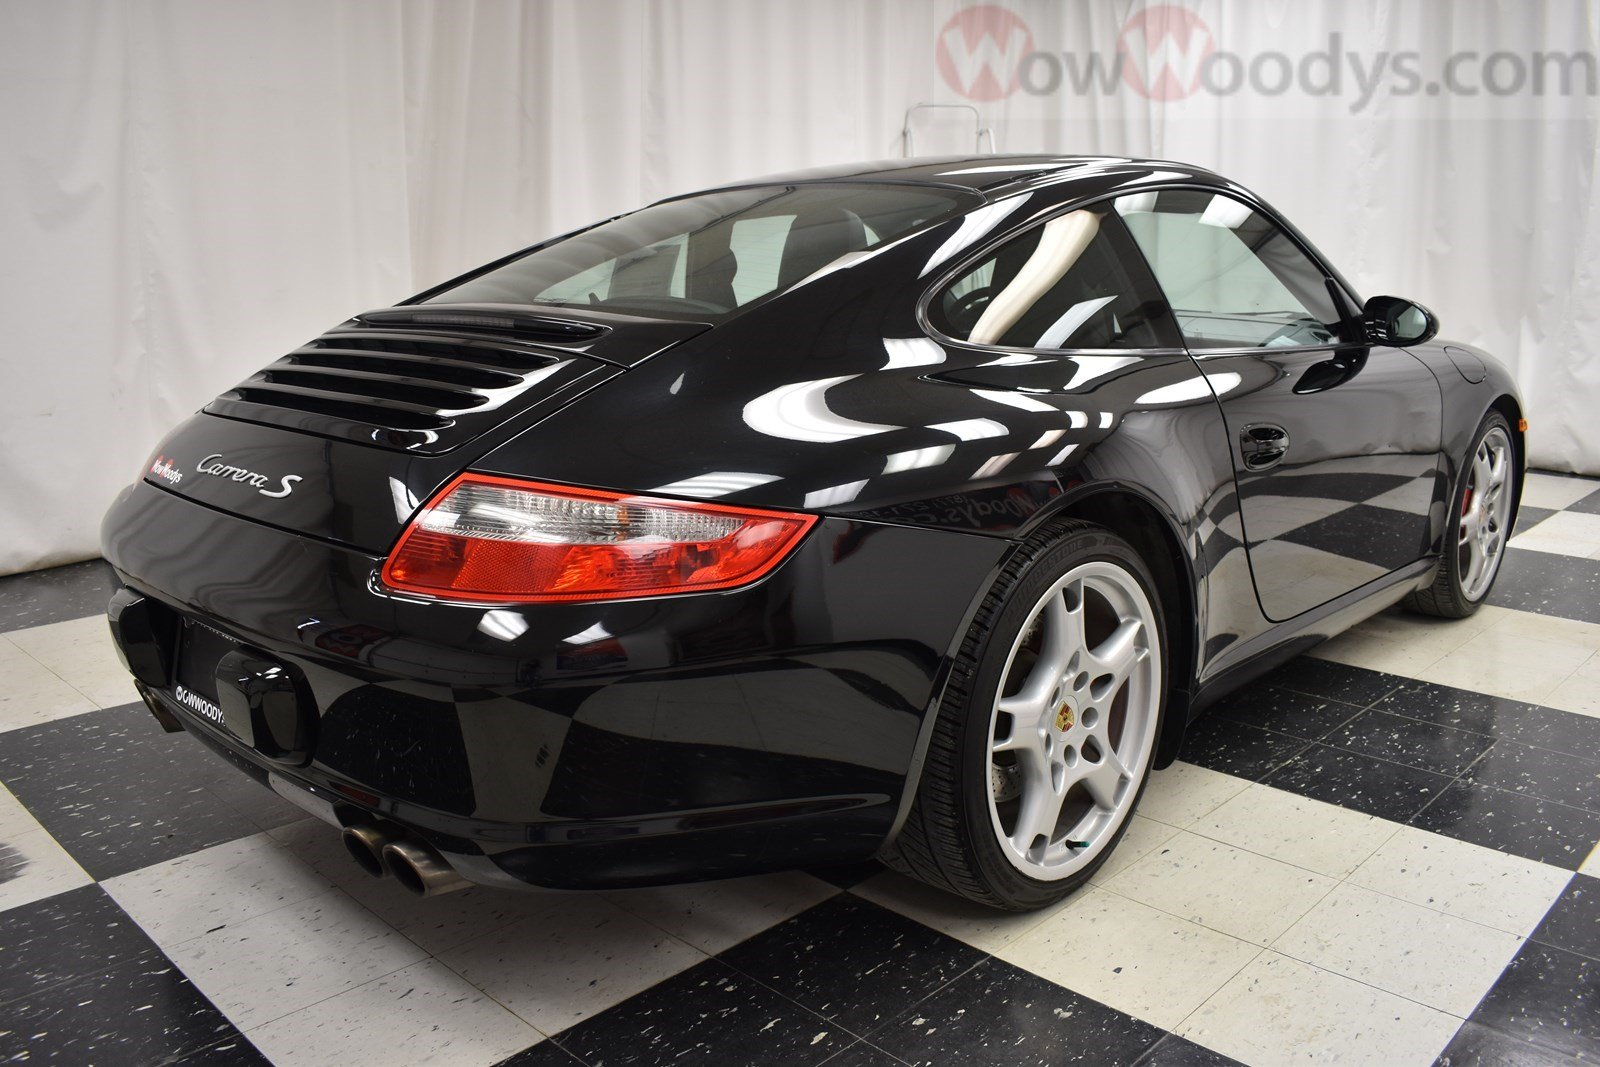 Coupe Shopping? Used 2006 Porsche 911 Carrera S for sale in Greater Kansas City